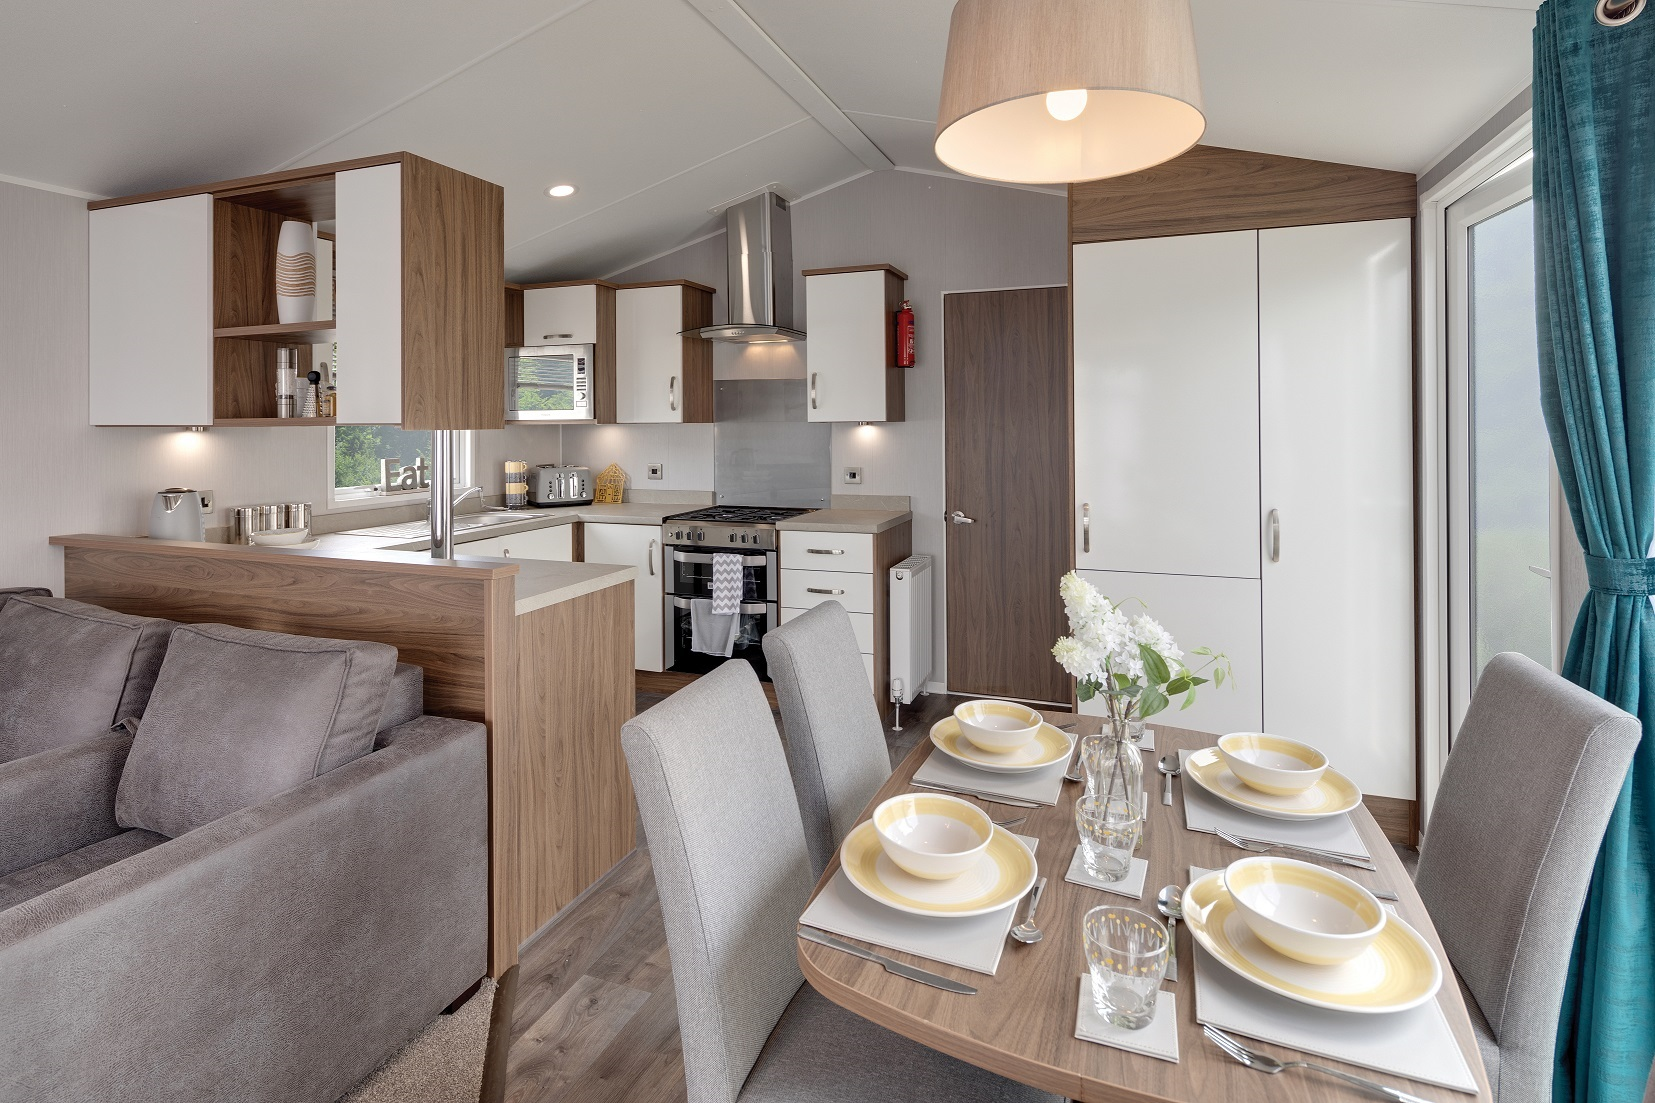 Willerby Avonmore: Static Caravans and Holiday Homes for Sale on Caravan Parks, Ripon, North Yorkshire Large Image 2